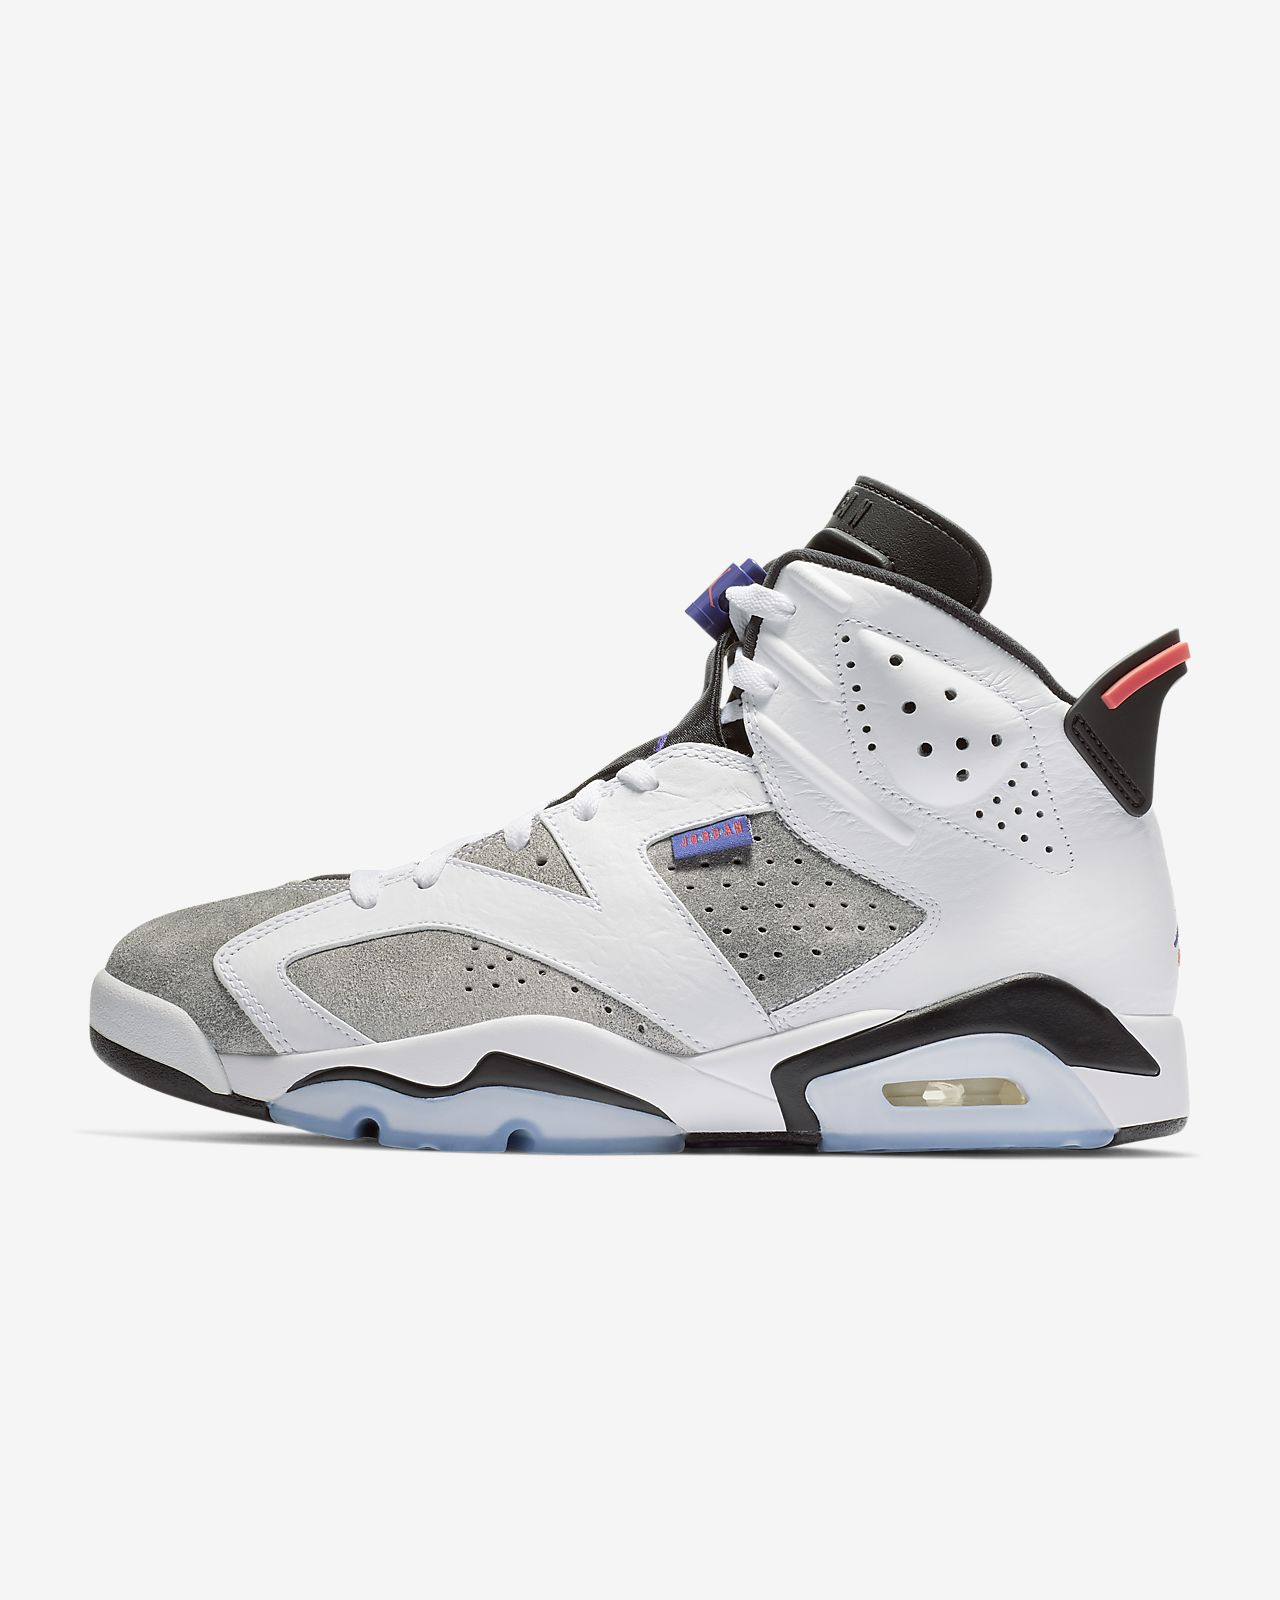 0f73d6f4a39c8c Air Jordan 6 Retro Men s Shoe. Nike.com